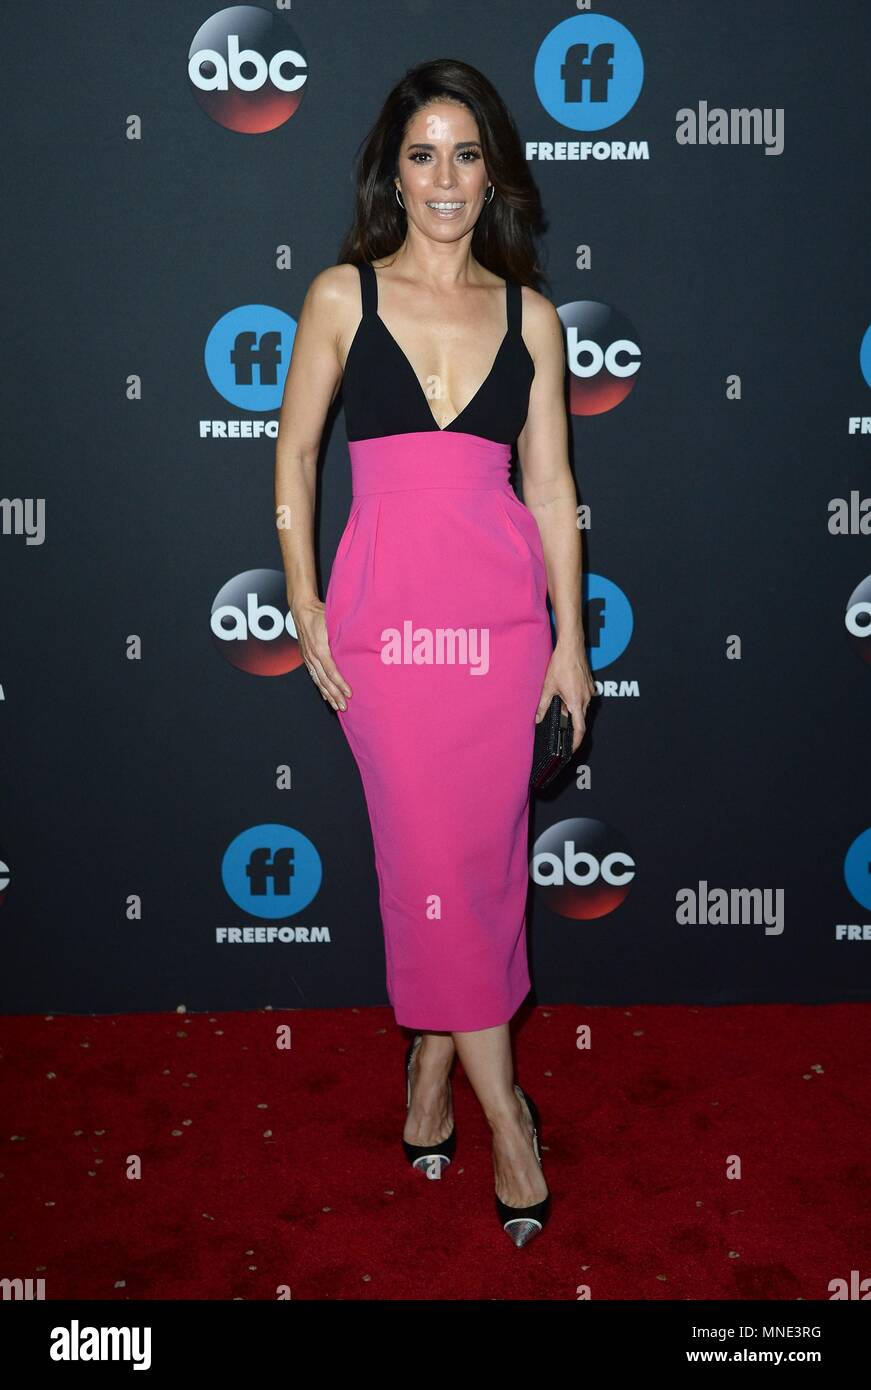 Ana Ortiz Pictures ana ortiz at arrivals for abc freeform upfront 2018, tavern